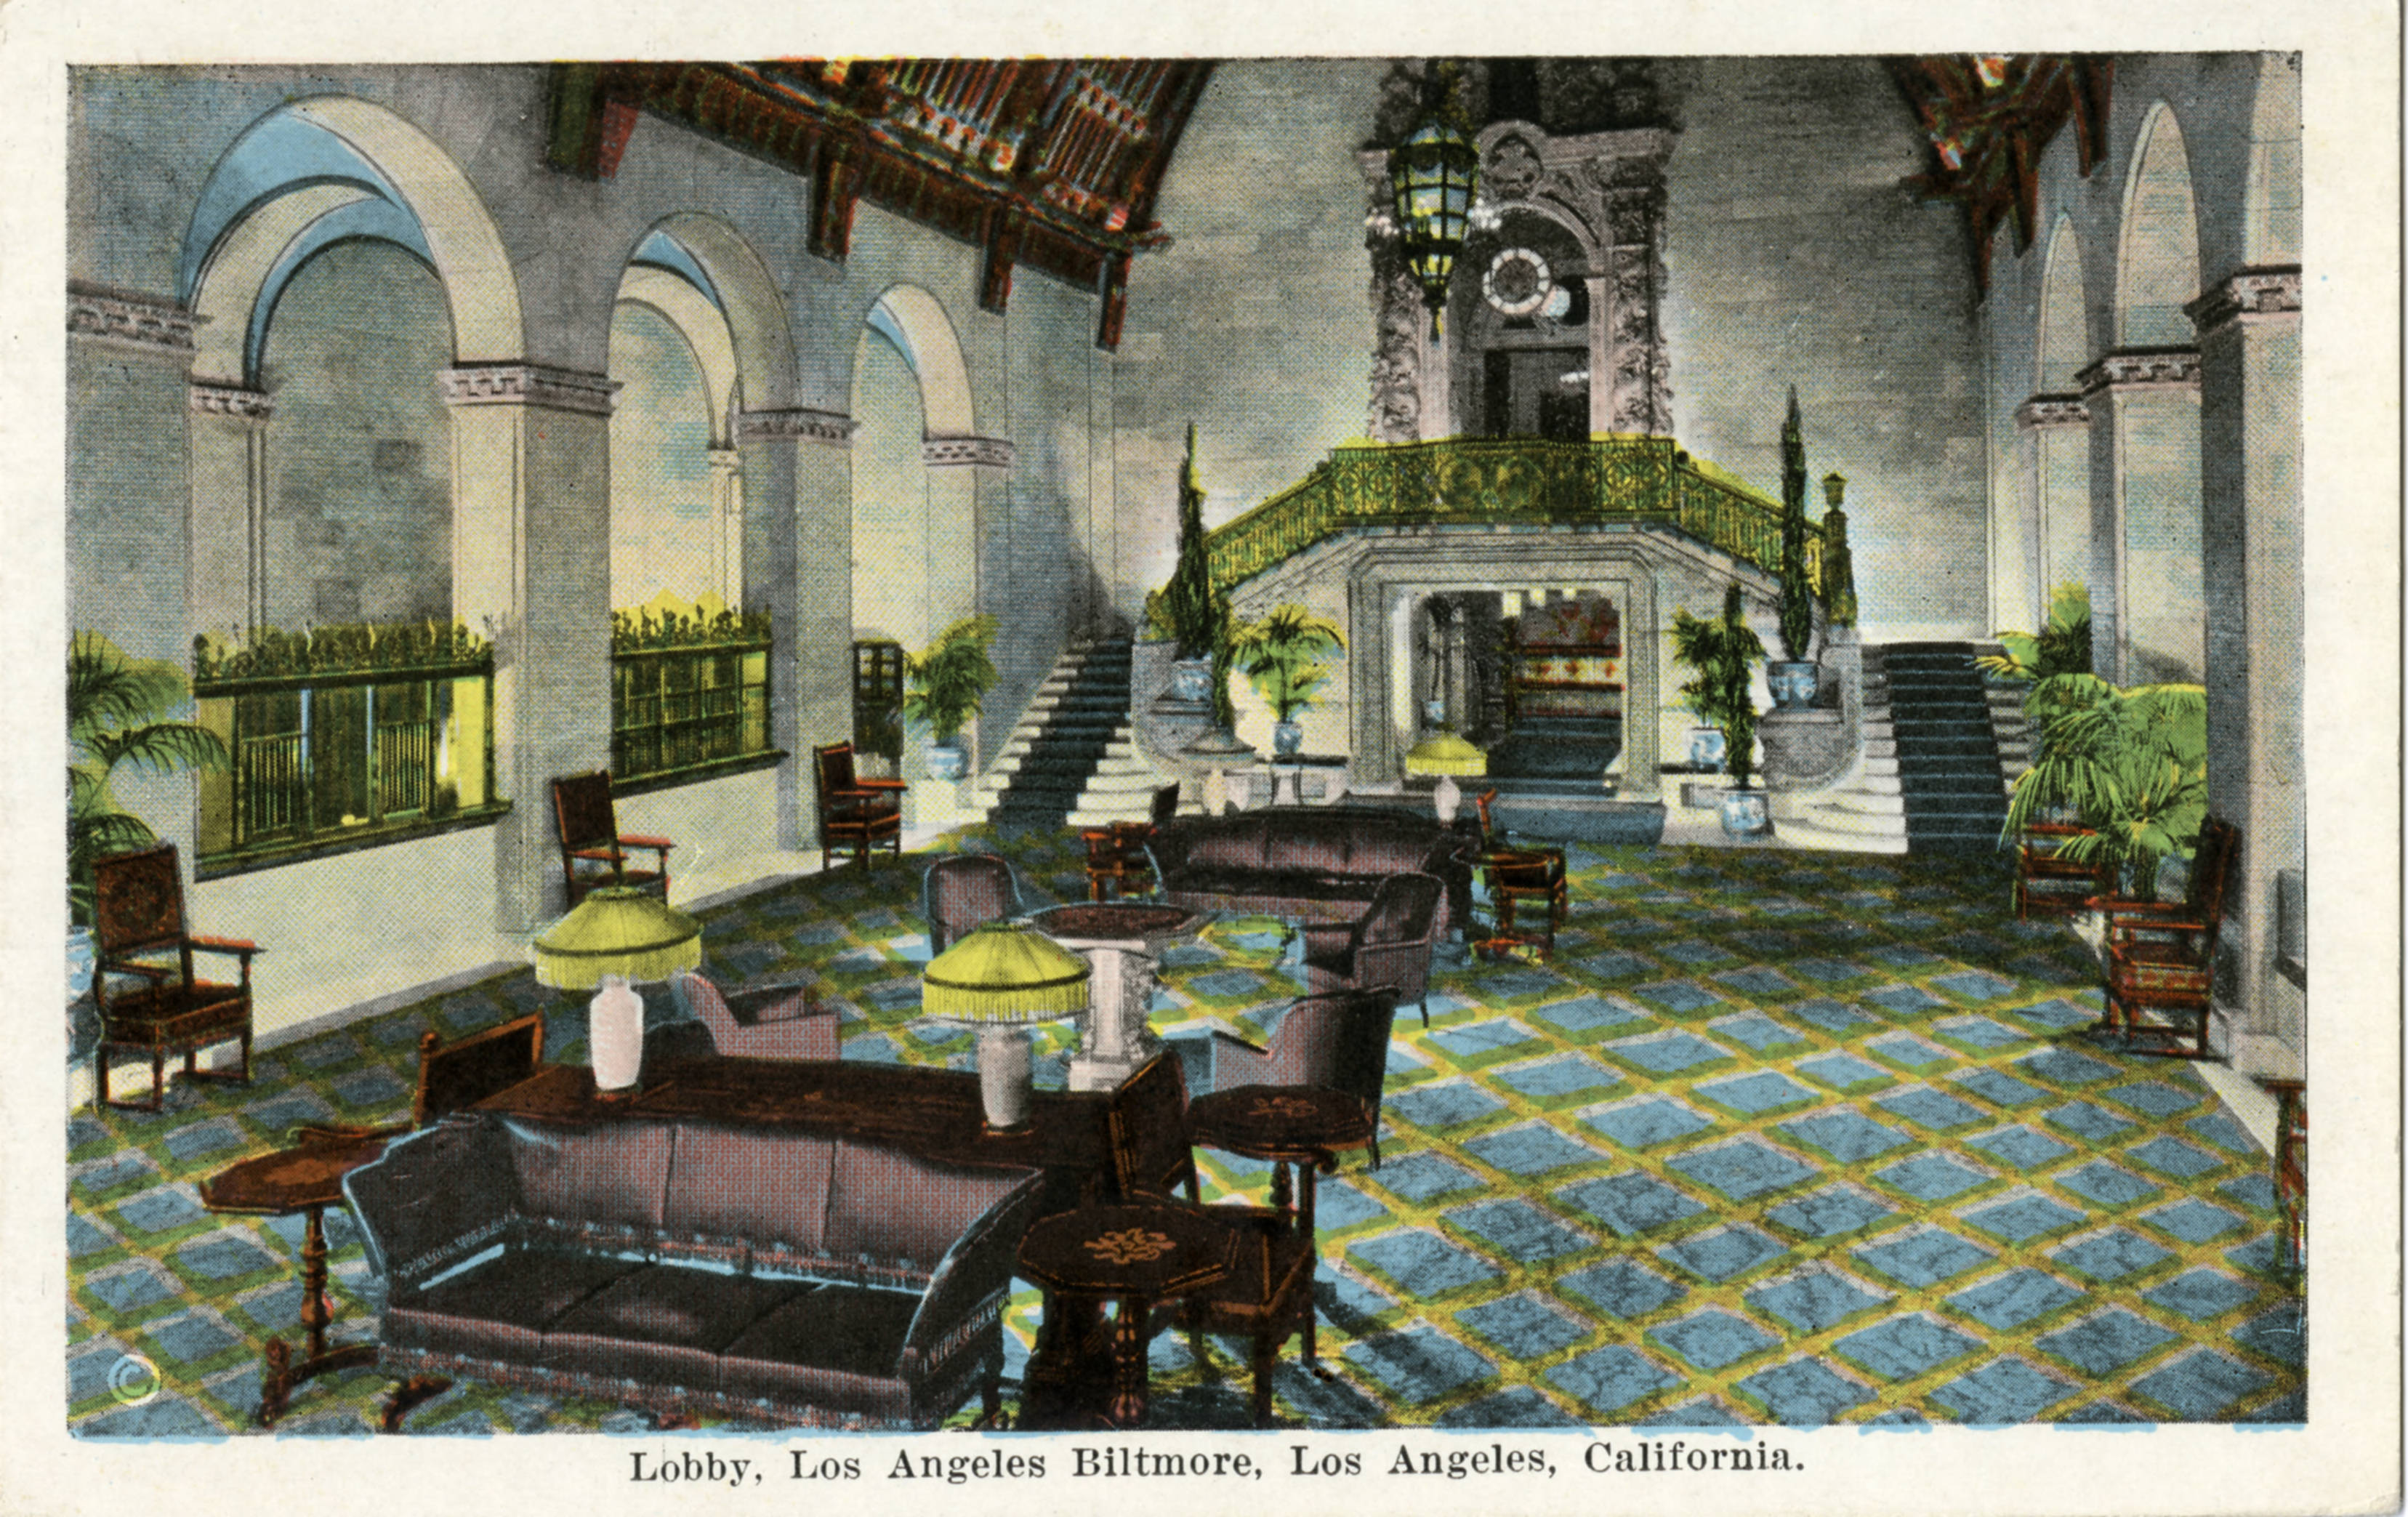 Lobby, Los Angeles Biltmore, Los Angeles, California